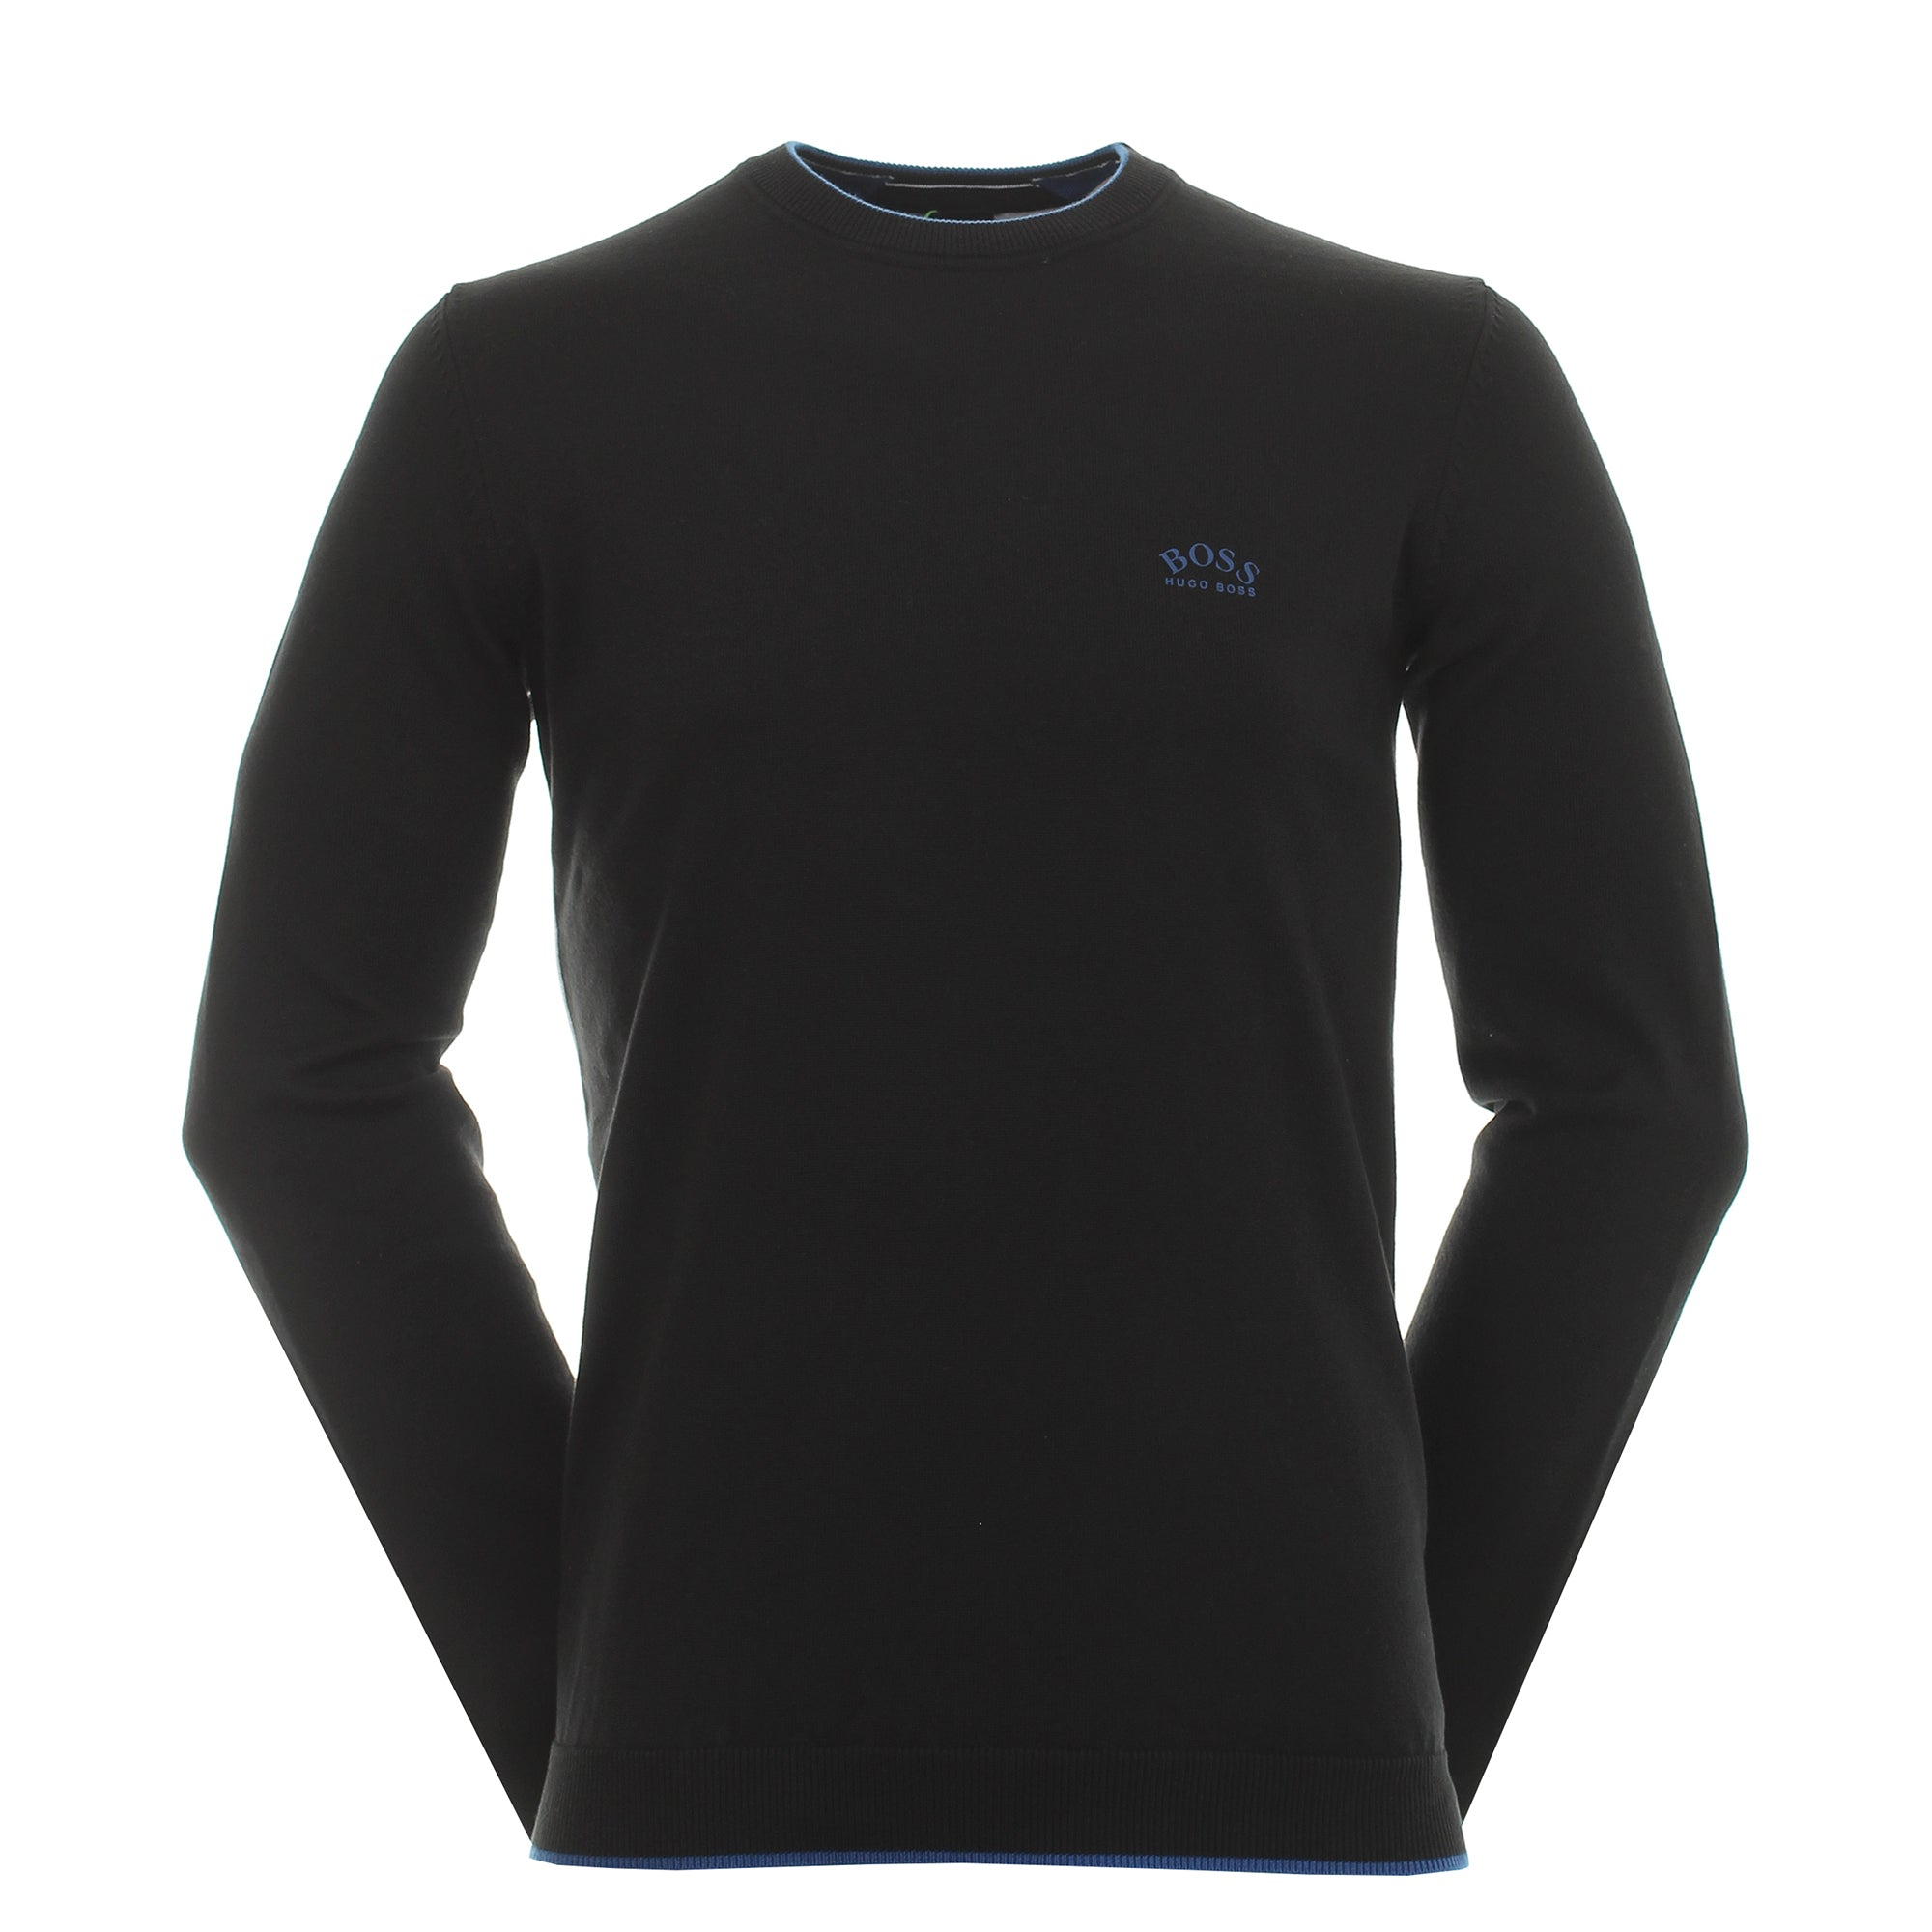 BOSS Riston Crew Neck Sweater